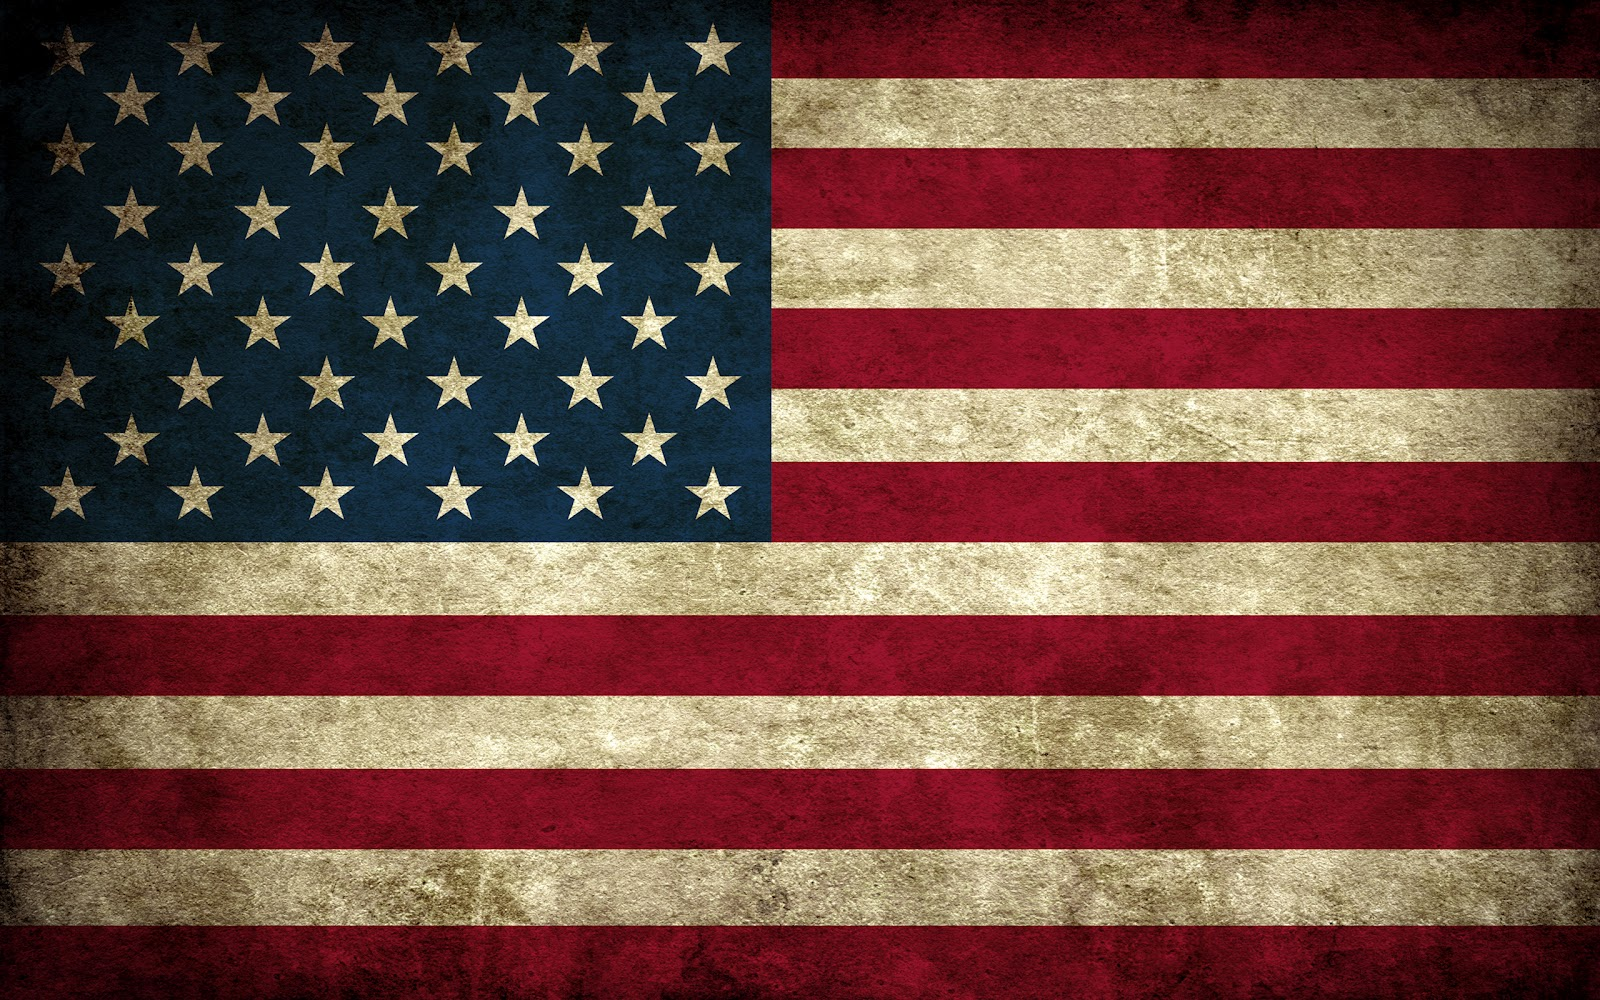 the way of life for americans in 1968 The sun (2015) democracy should become a way of life, indeed it was the only way of life which could claim the allegiance of the free individual roper, jon democracy and its critics - anglo-american democratic thought in the nineteenth century ( 1989 ) some people 's way of life is clearly more valuable than others .